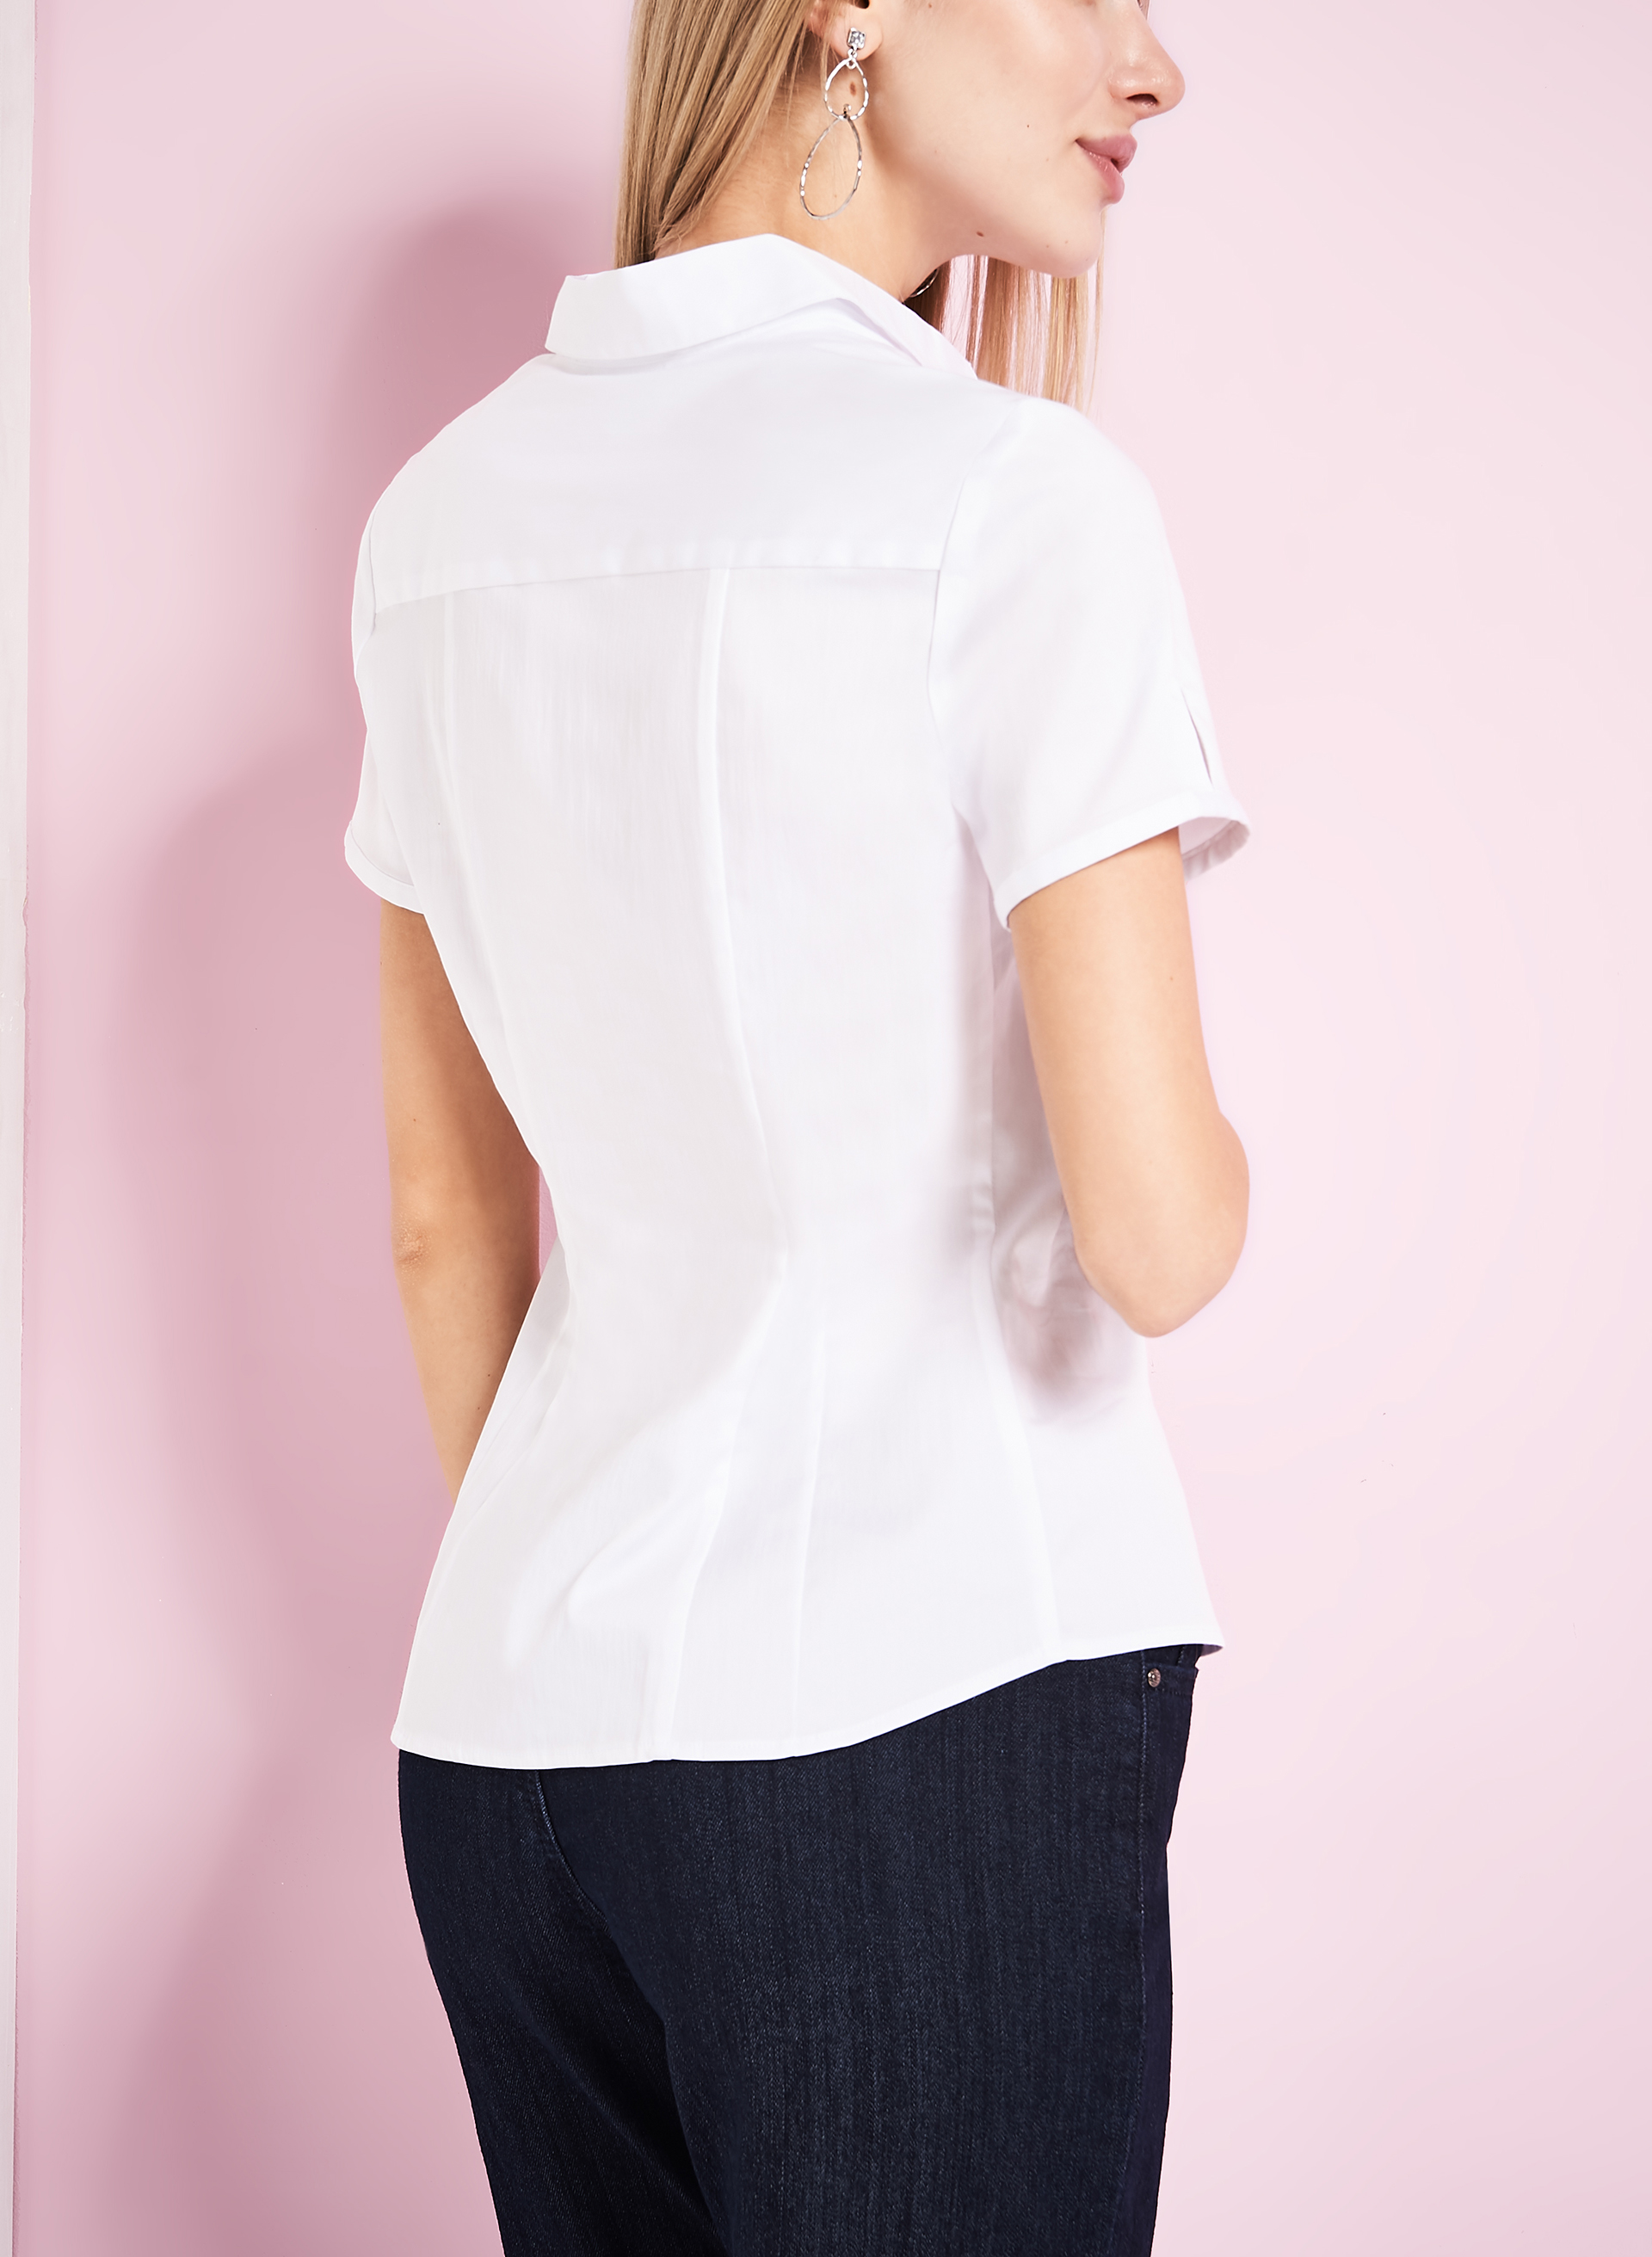 Short Sleeve White Blouse